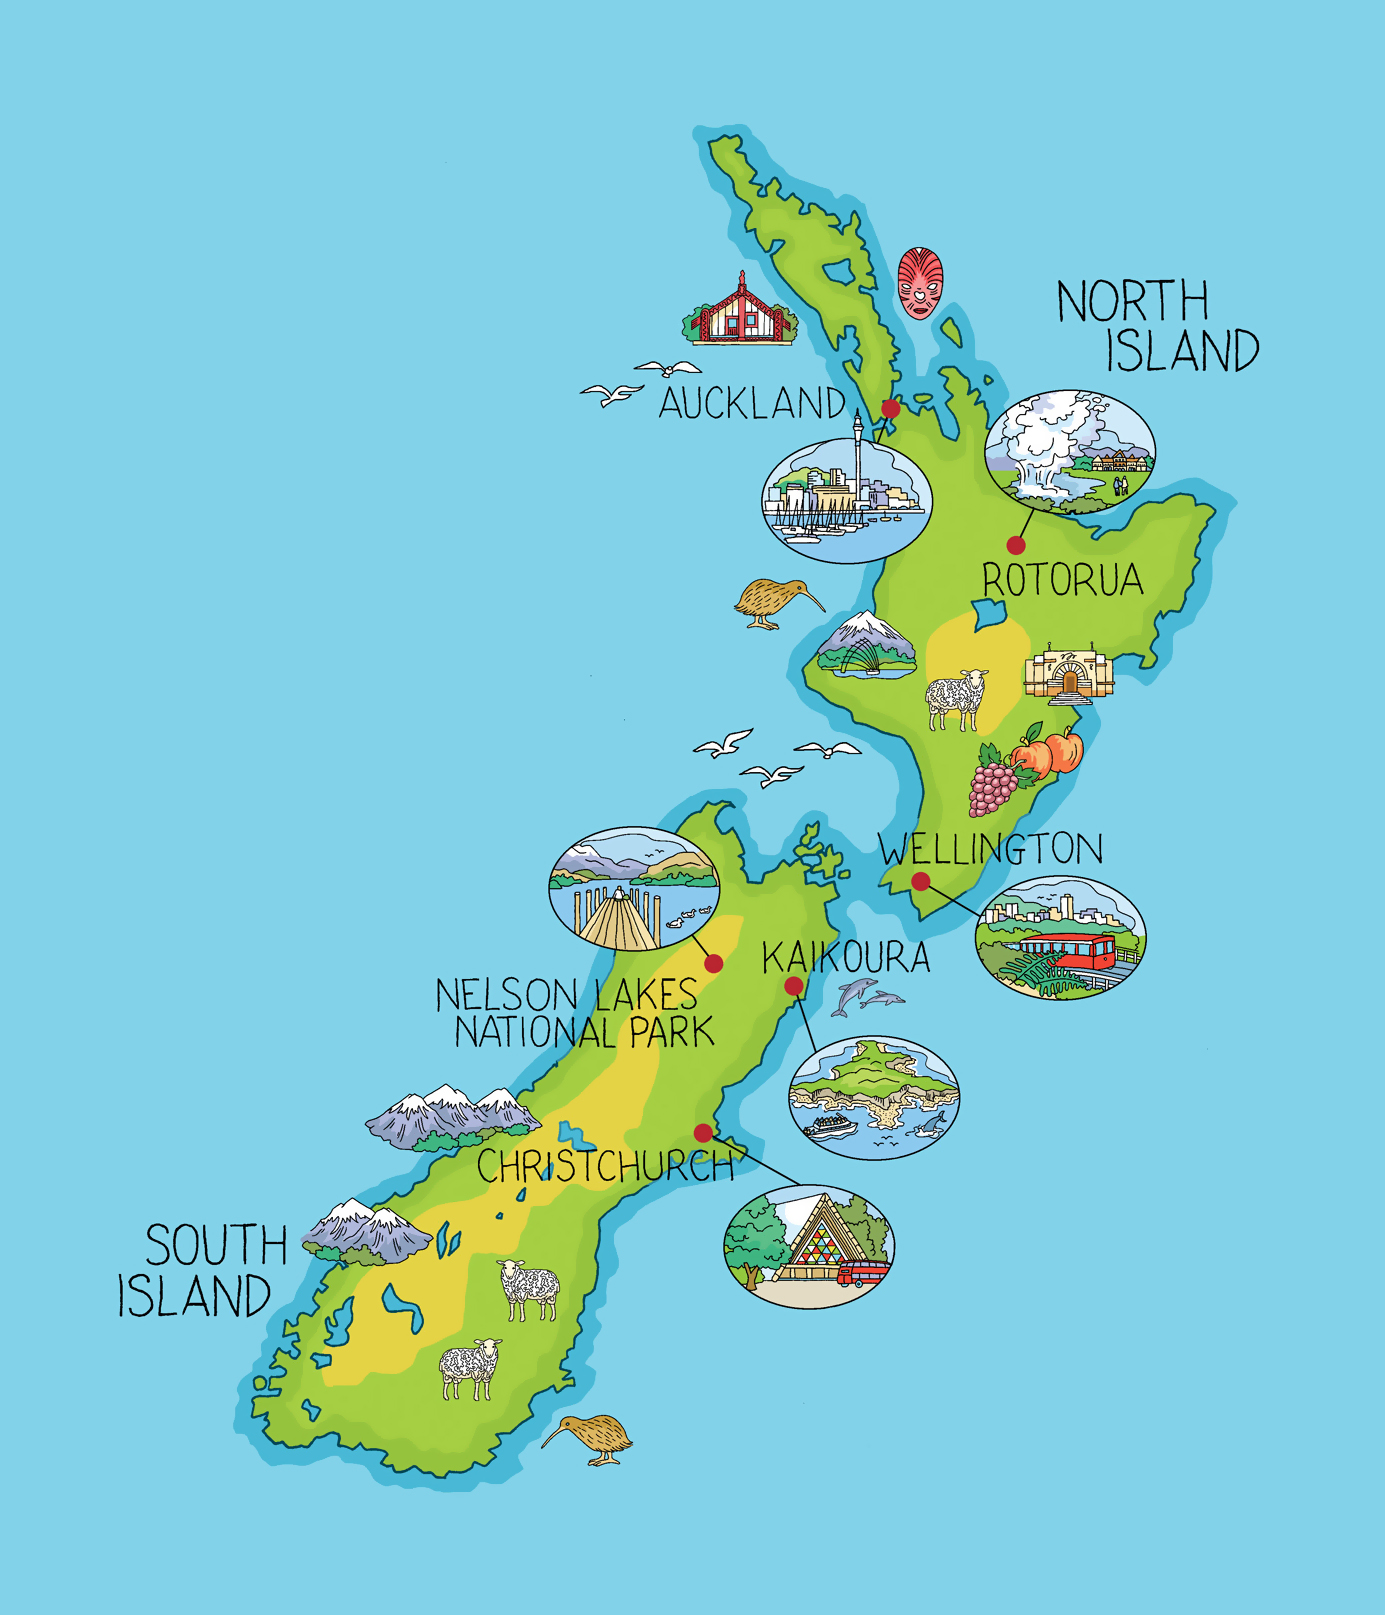 New Zealand North Map.Large Illustrated Map Of New Zealand New Zealand Oceania